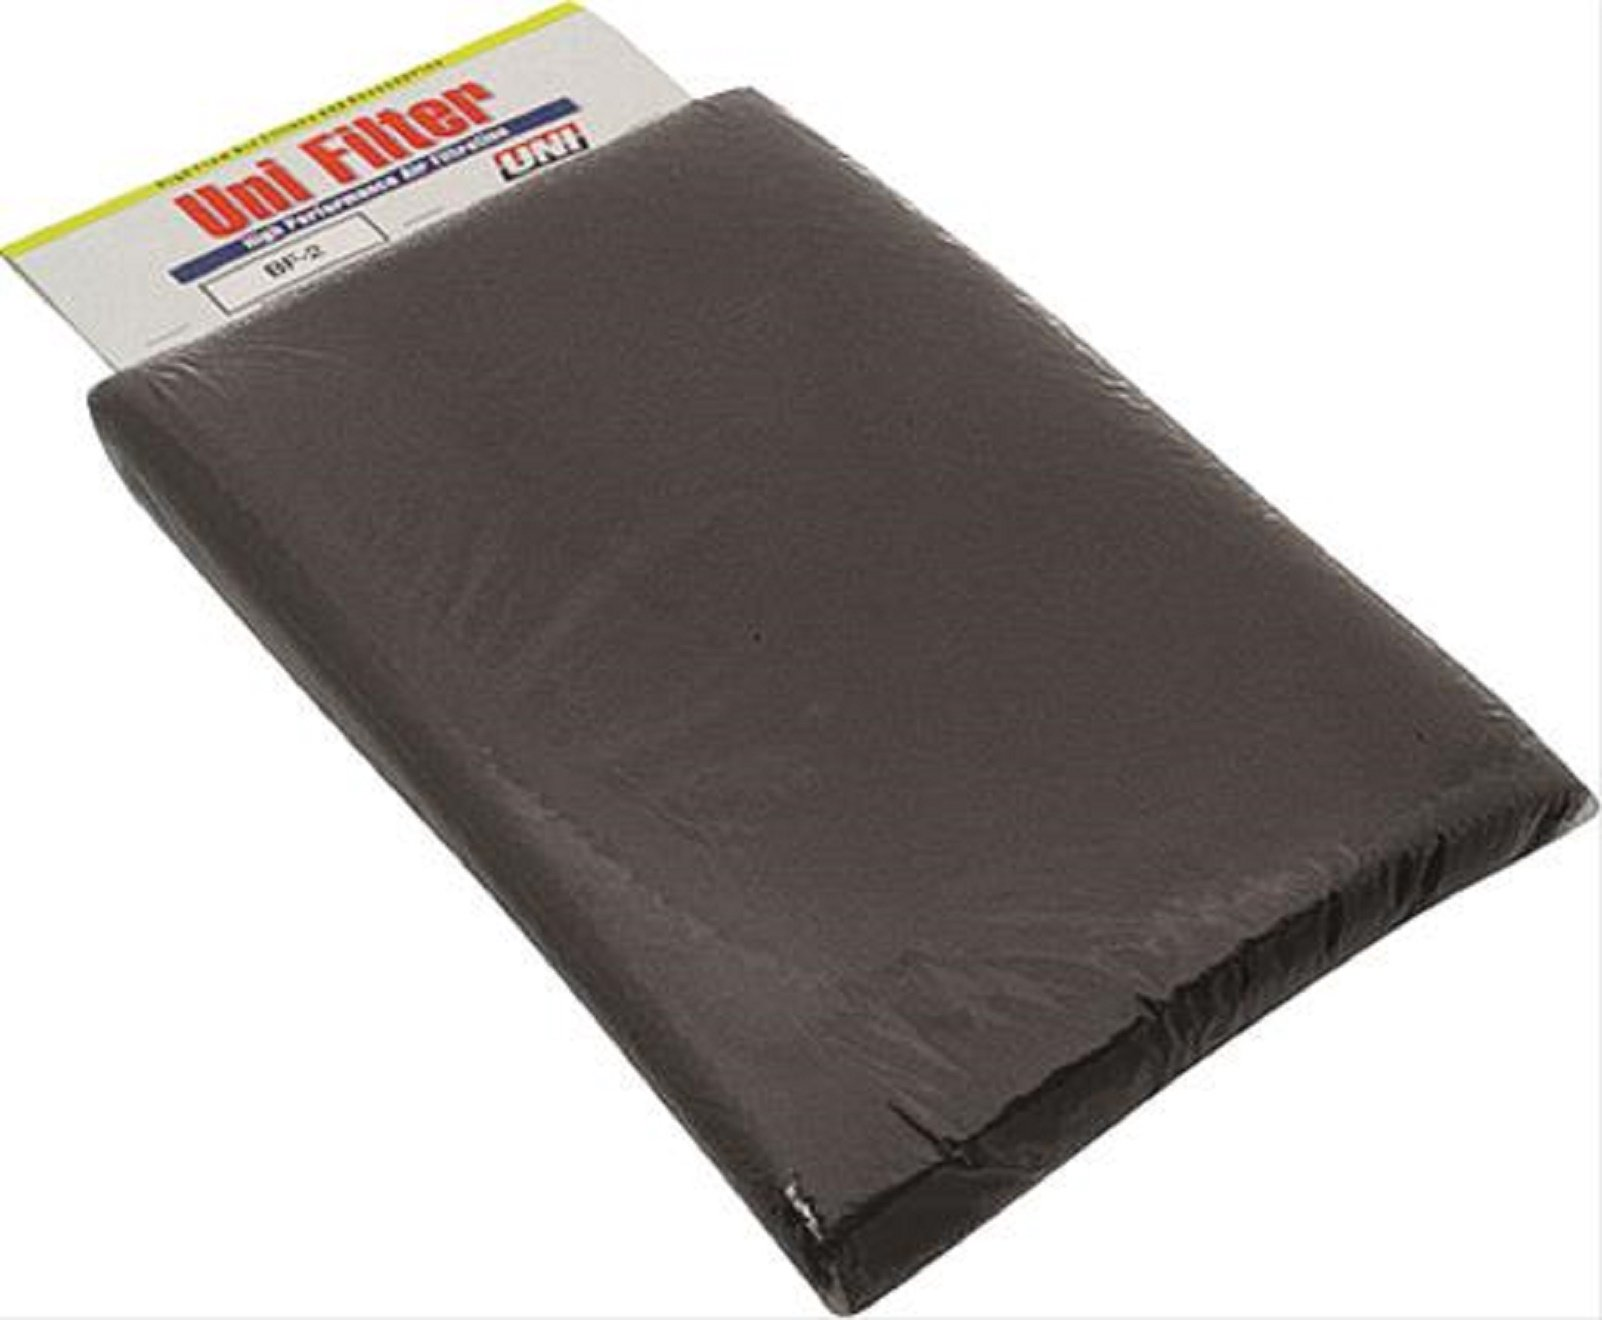 UNI FOAM FILTER SHEET 12 X 24X 3/8'' 30 PPI BLACK COARSE, Manufacturer: UNI FILTER, Manufacturer Part Number: BF-2-AD, Stock Photo - Actual parts may vary.